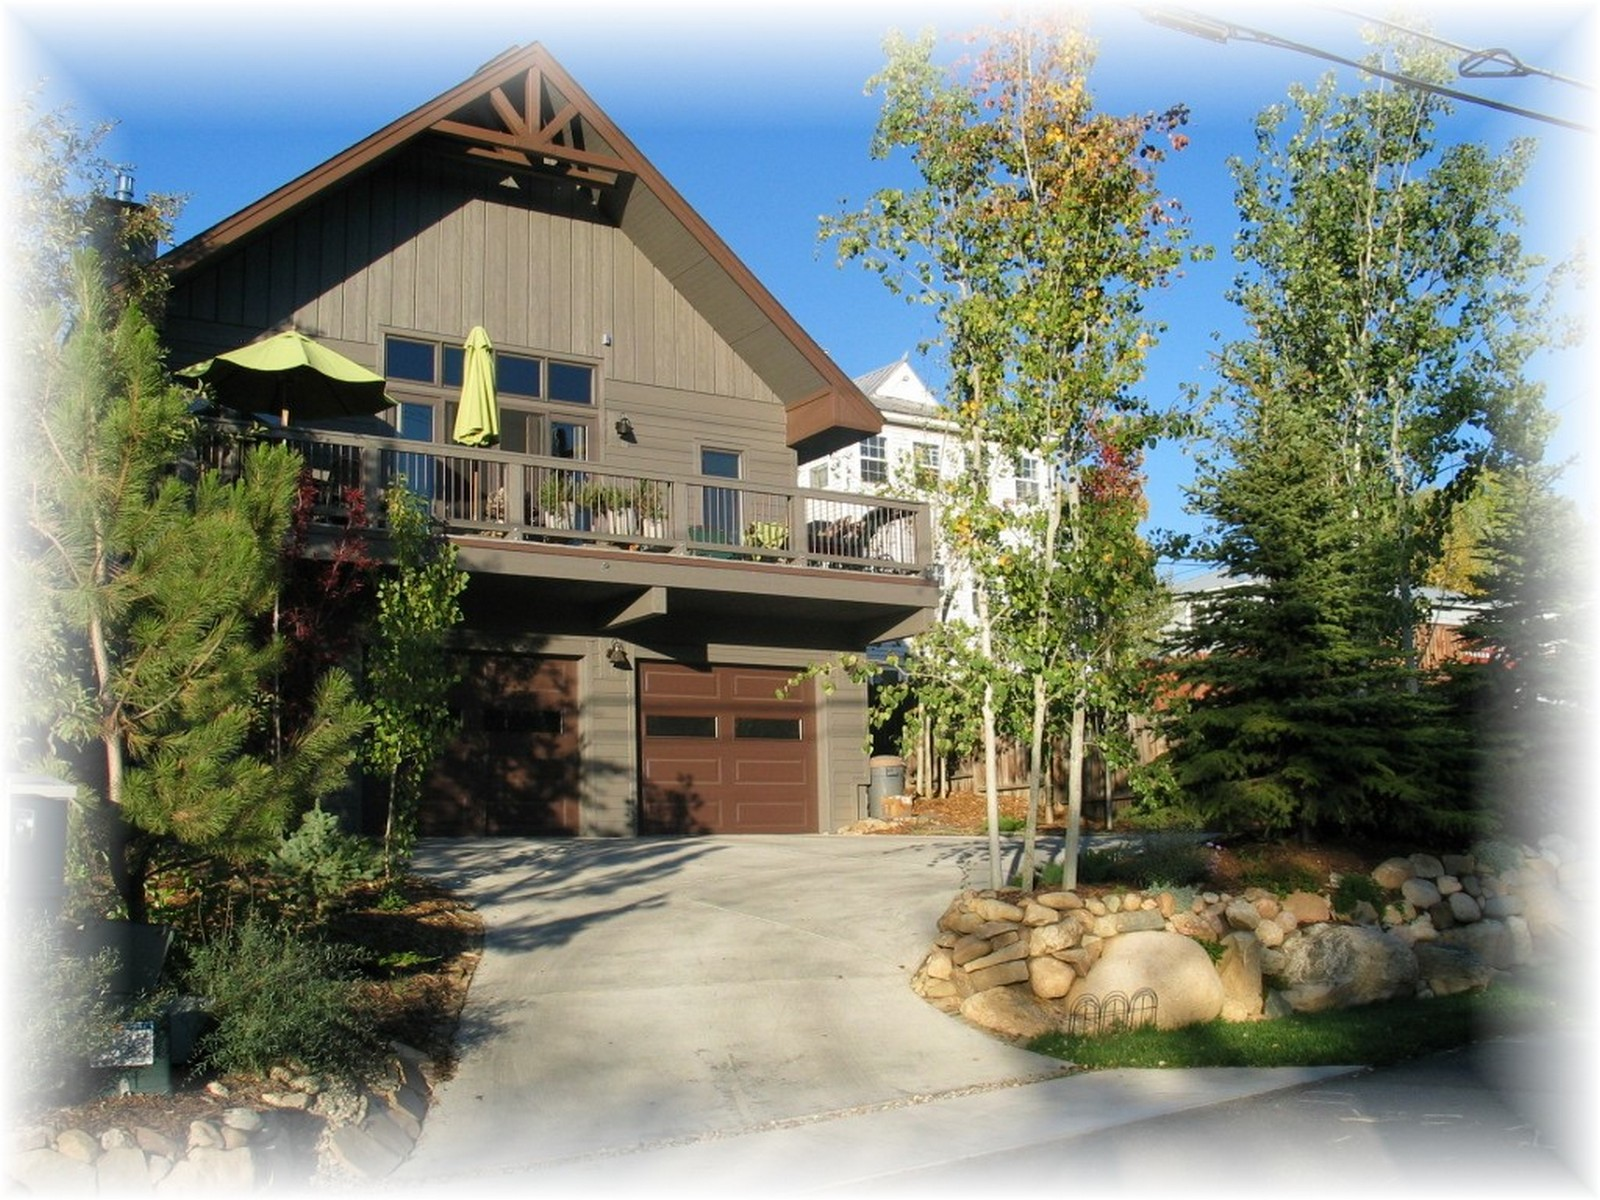 Maison unifamiliale pour l Vente à Custom Downtown Home 431 Pine Street Steamboat Springs, Colorado 80477 États-Unis